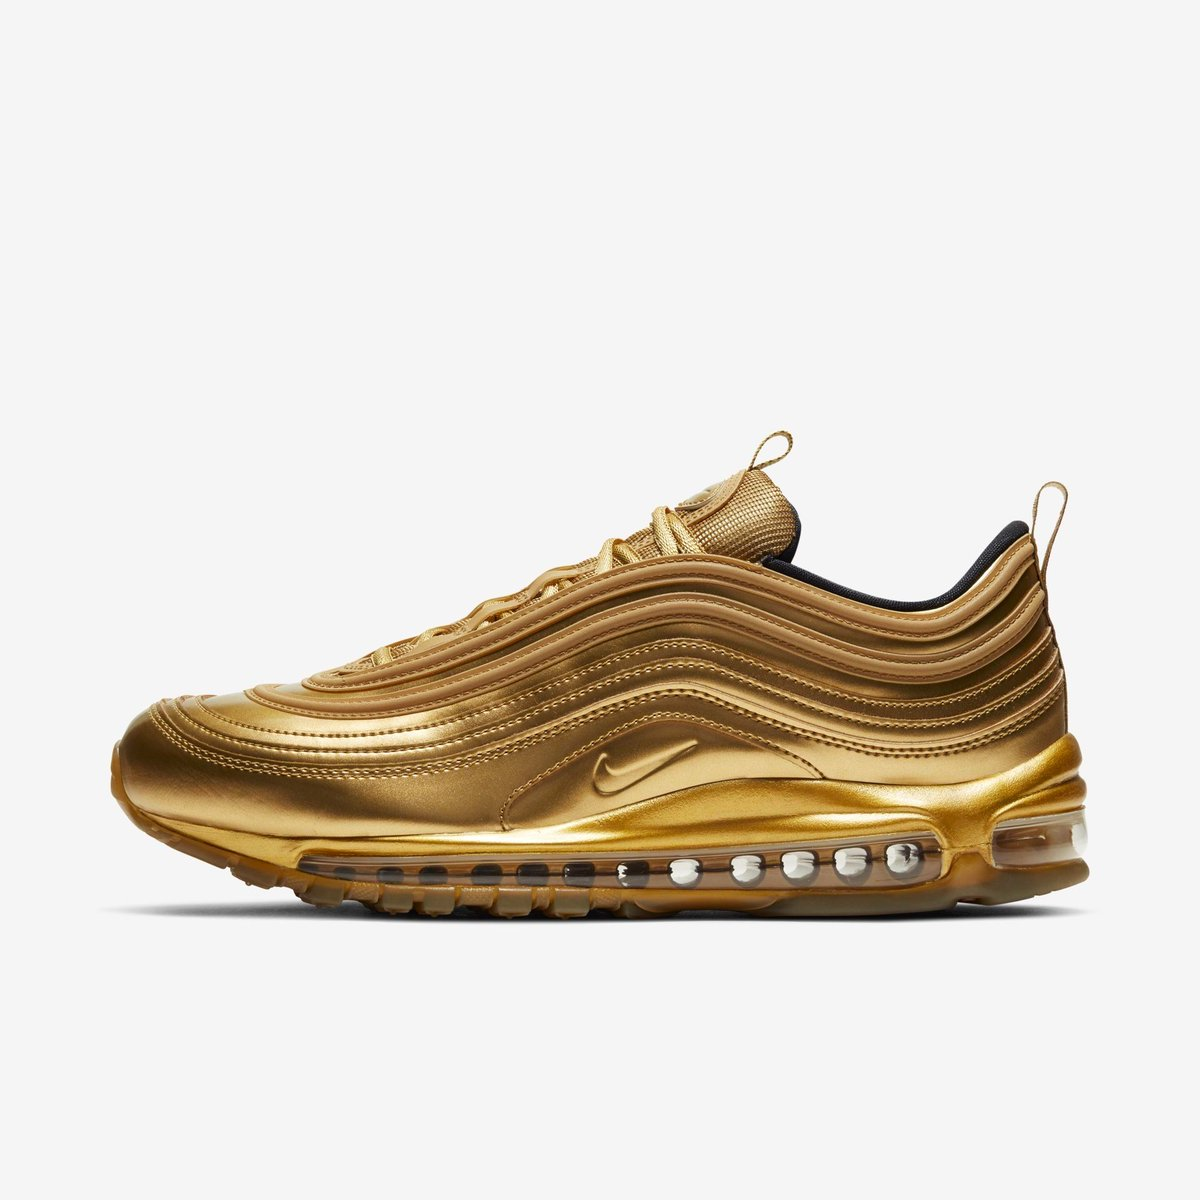 """Ad: The Nike Air Max 97 QS """"Gold Medal"""" is only $126 at YCMC! Use code NSGM30 in cart.     https://t.co/m18lkK9Vj2"""